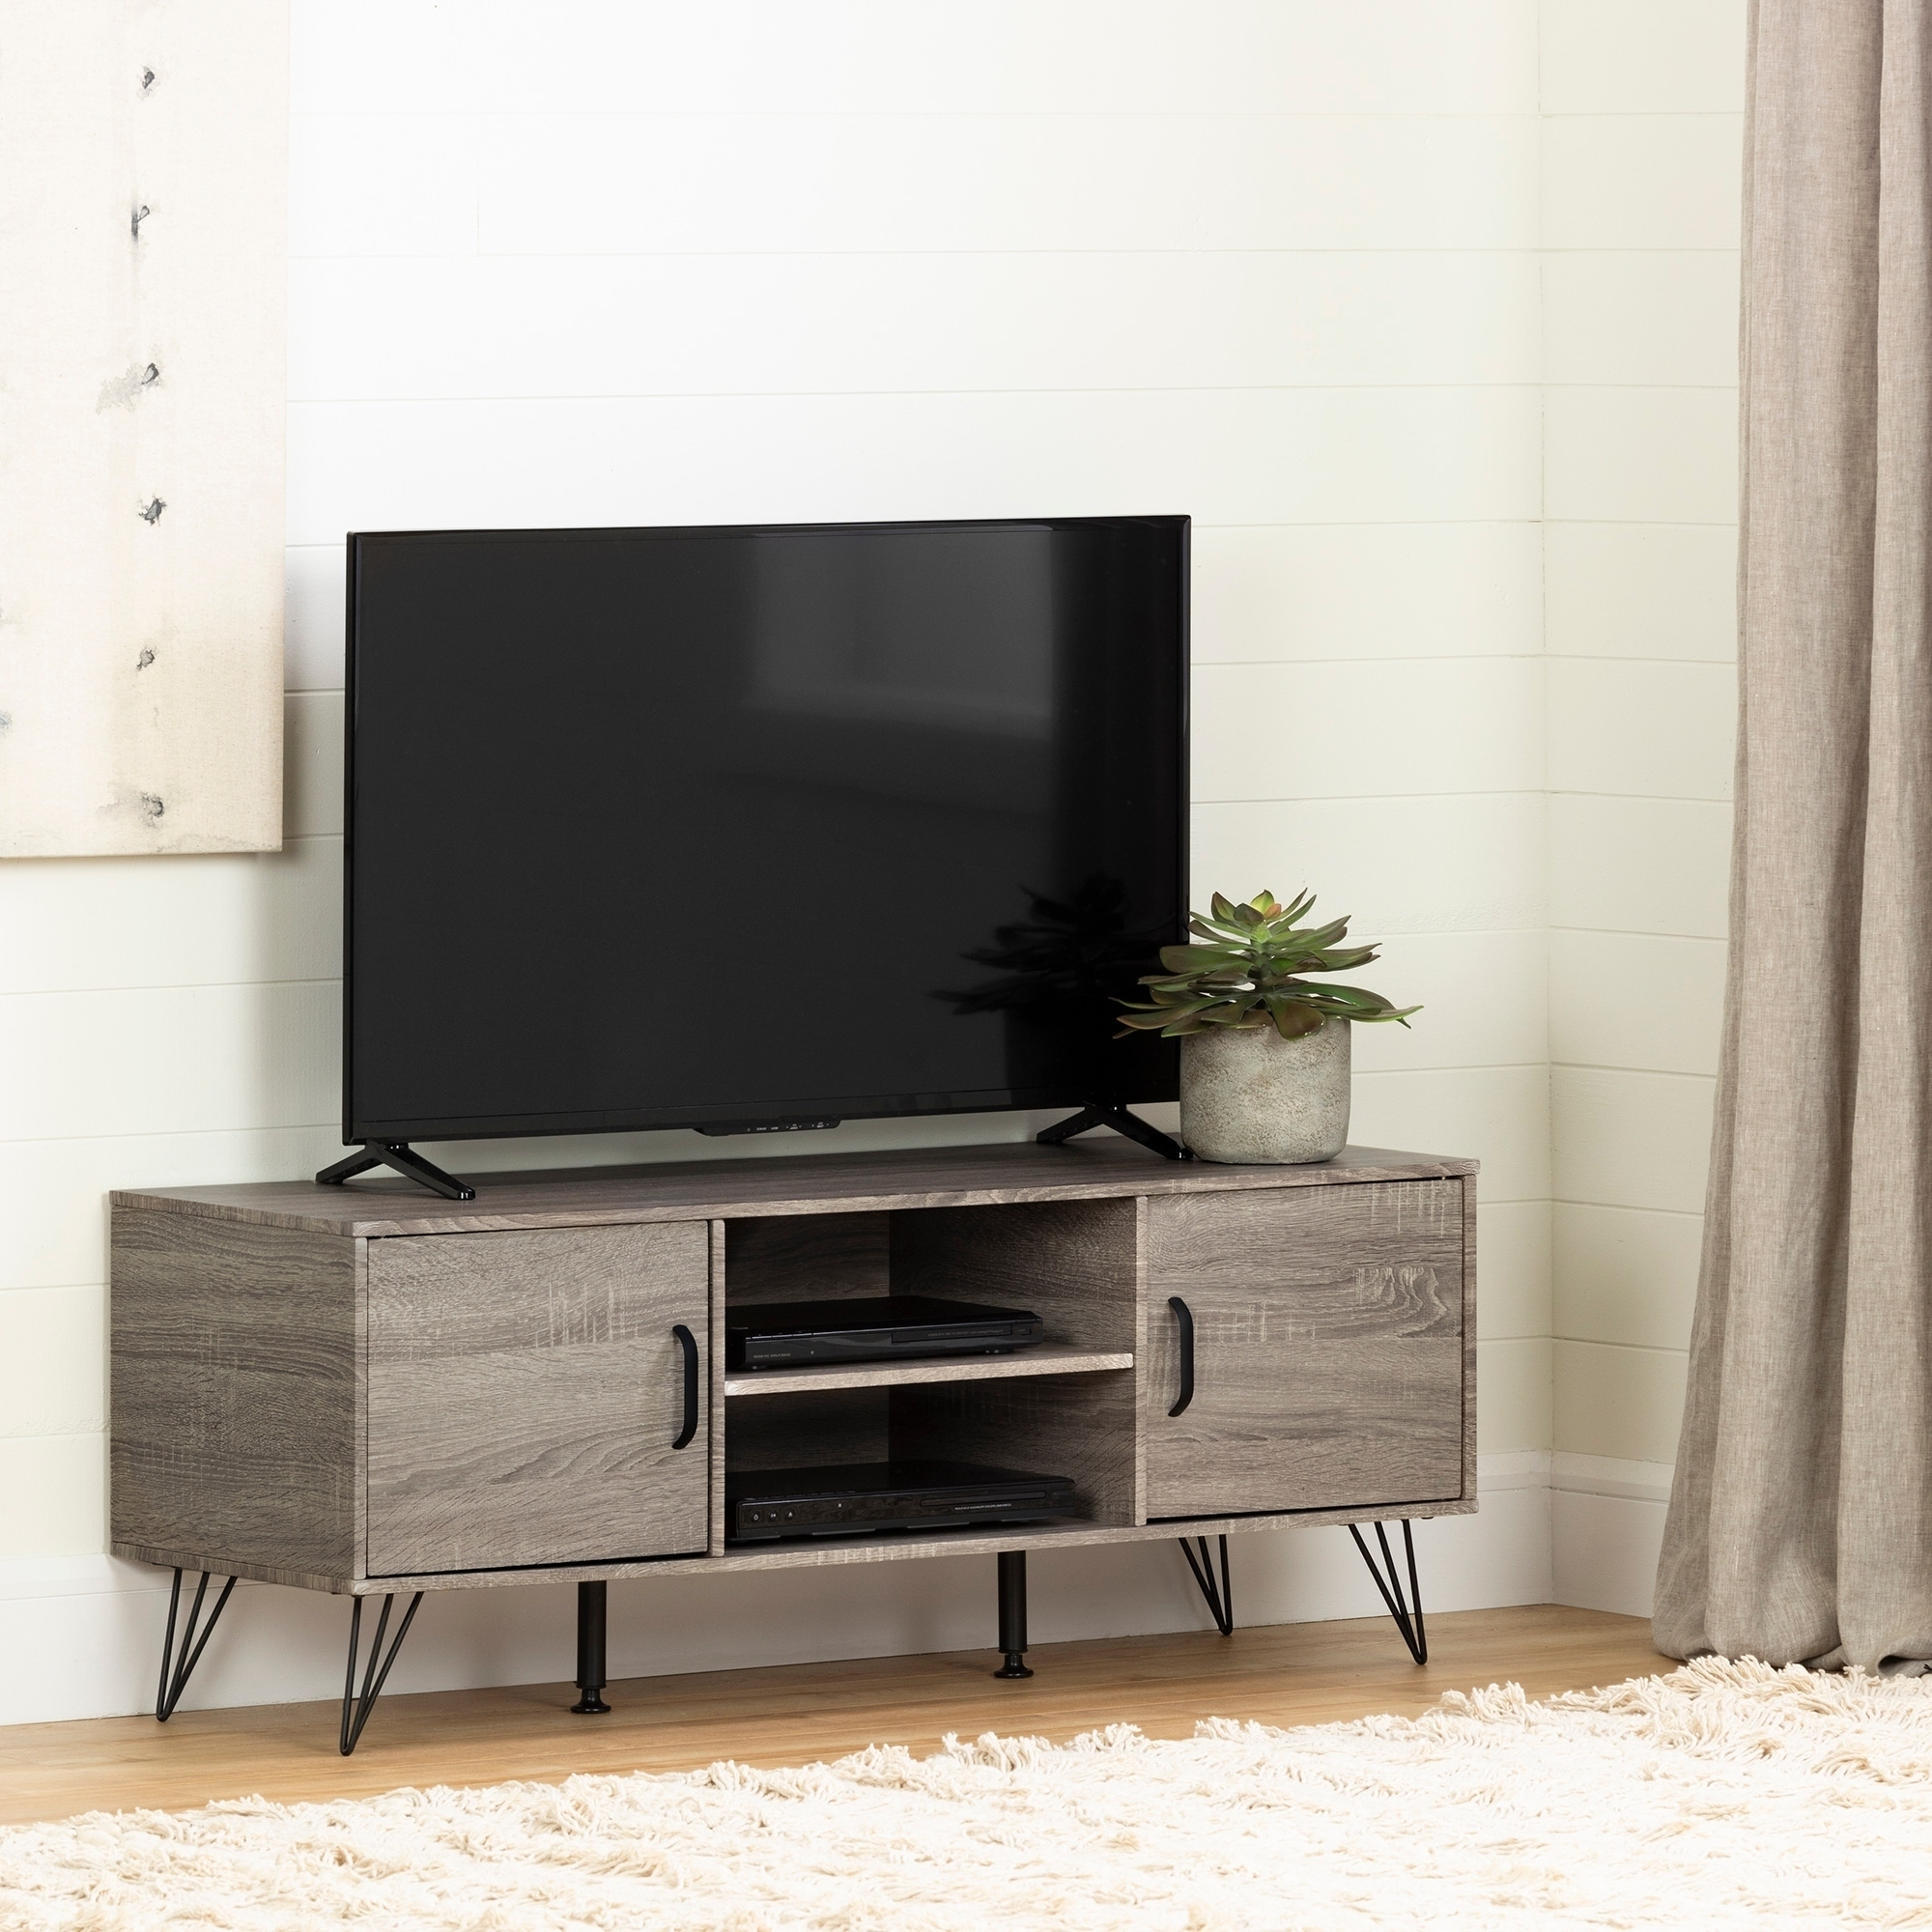 South Shore Evane Tv Stands With Doors In Oak Camel With Regard To Widely Used South Shore Evane Tv Stand With Doors For Tvs Up To  (View 4 of 10)